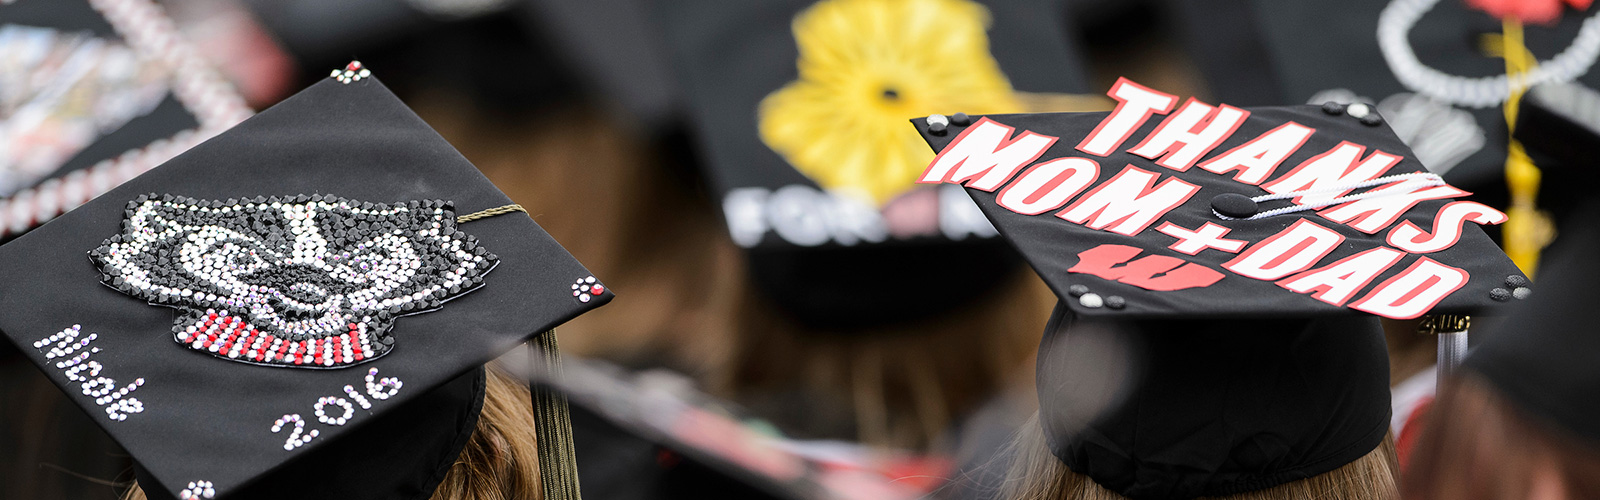 Graduates put their creativity on display with decorated and Wisconsin-themed mortarboards during UW–Madison's spring commencement ceremony at Camp Randall Stadium.